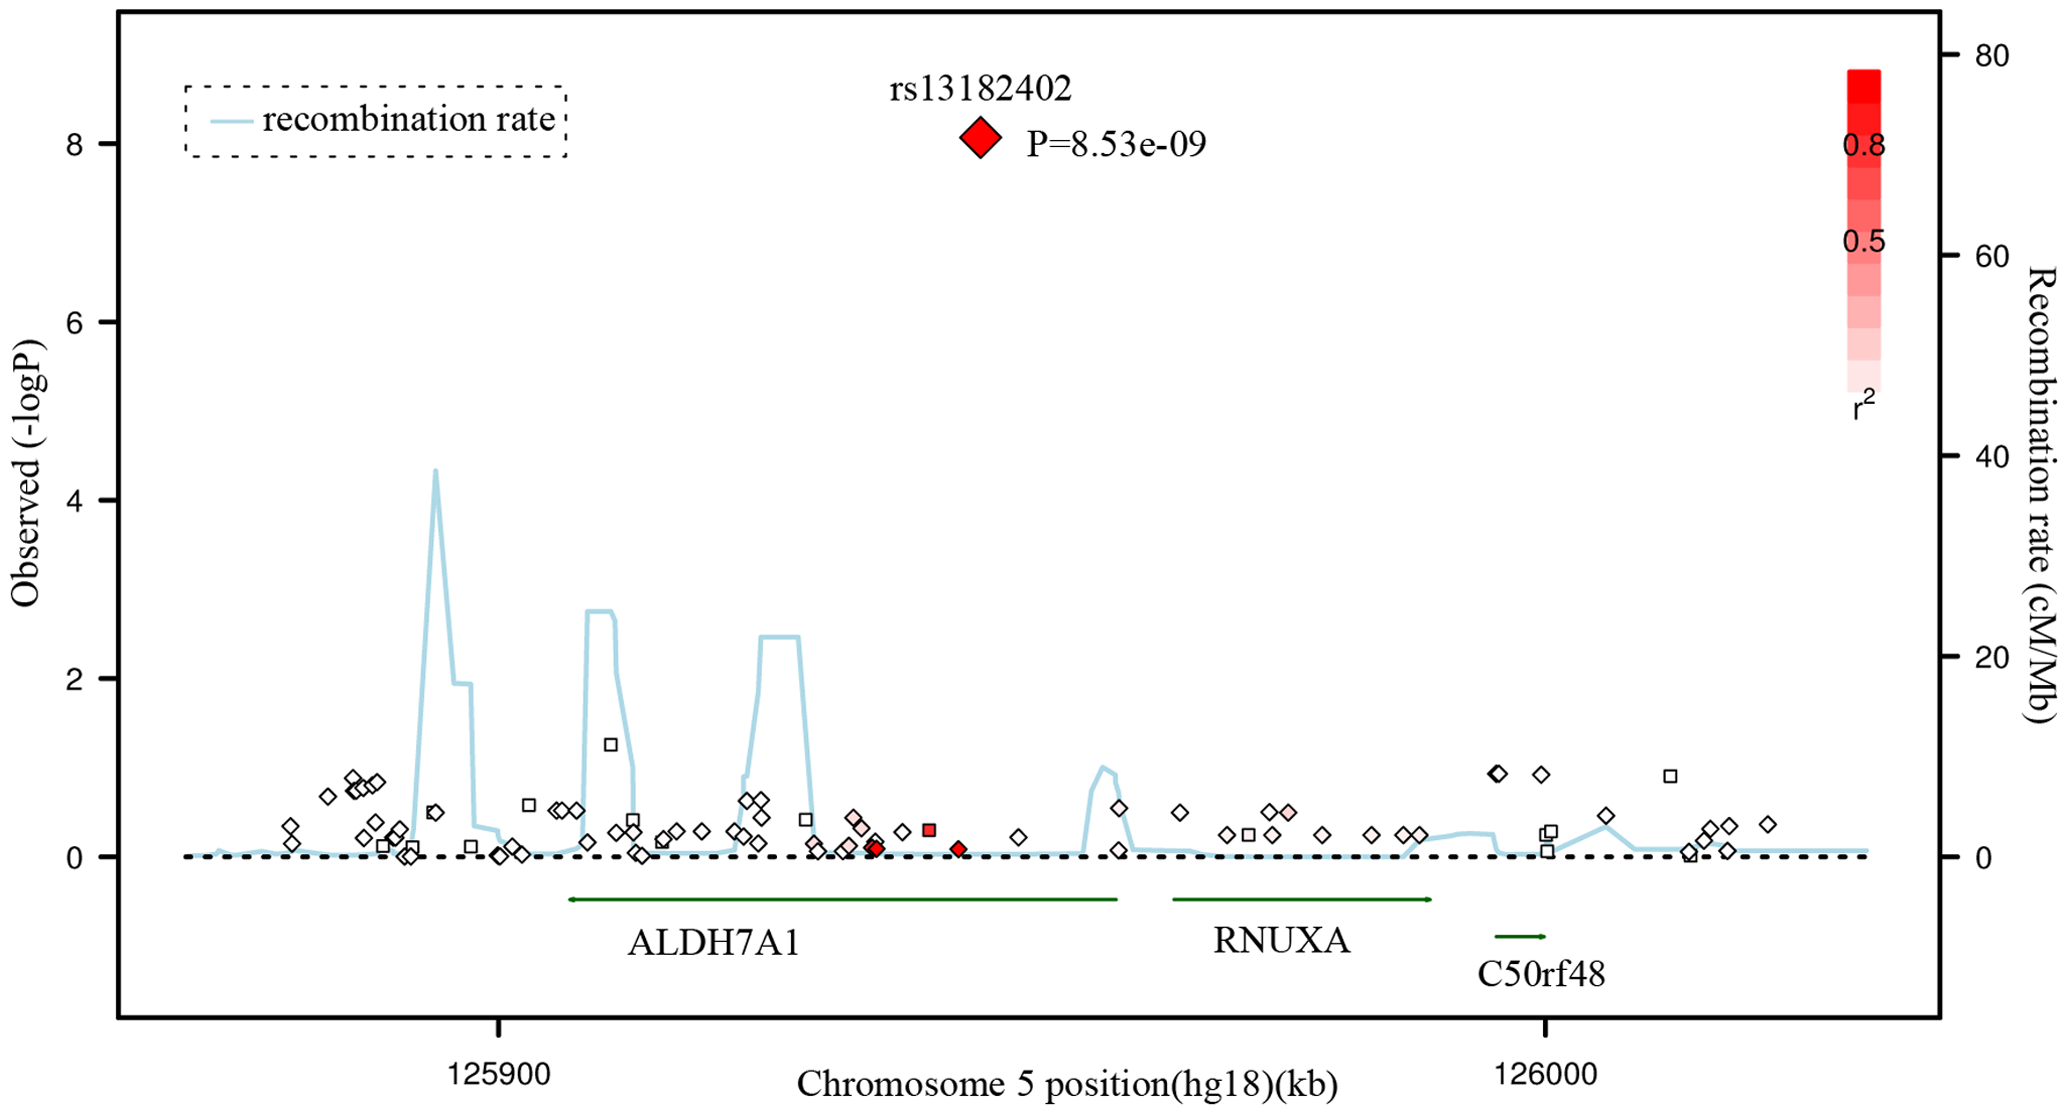 Regional Association Plot for rs13182402 on chromosome 5 in the GWAS stage.